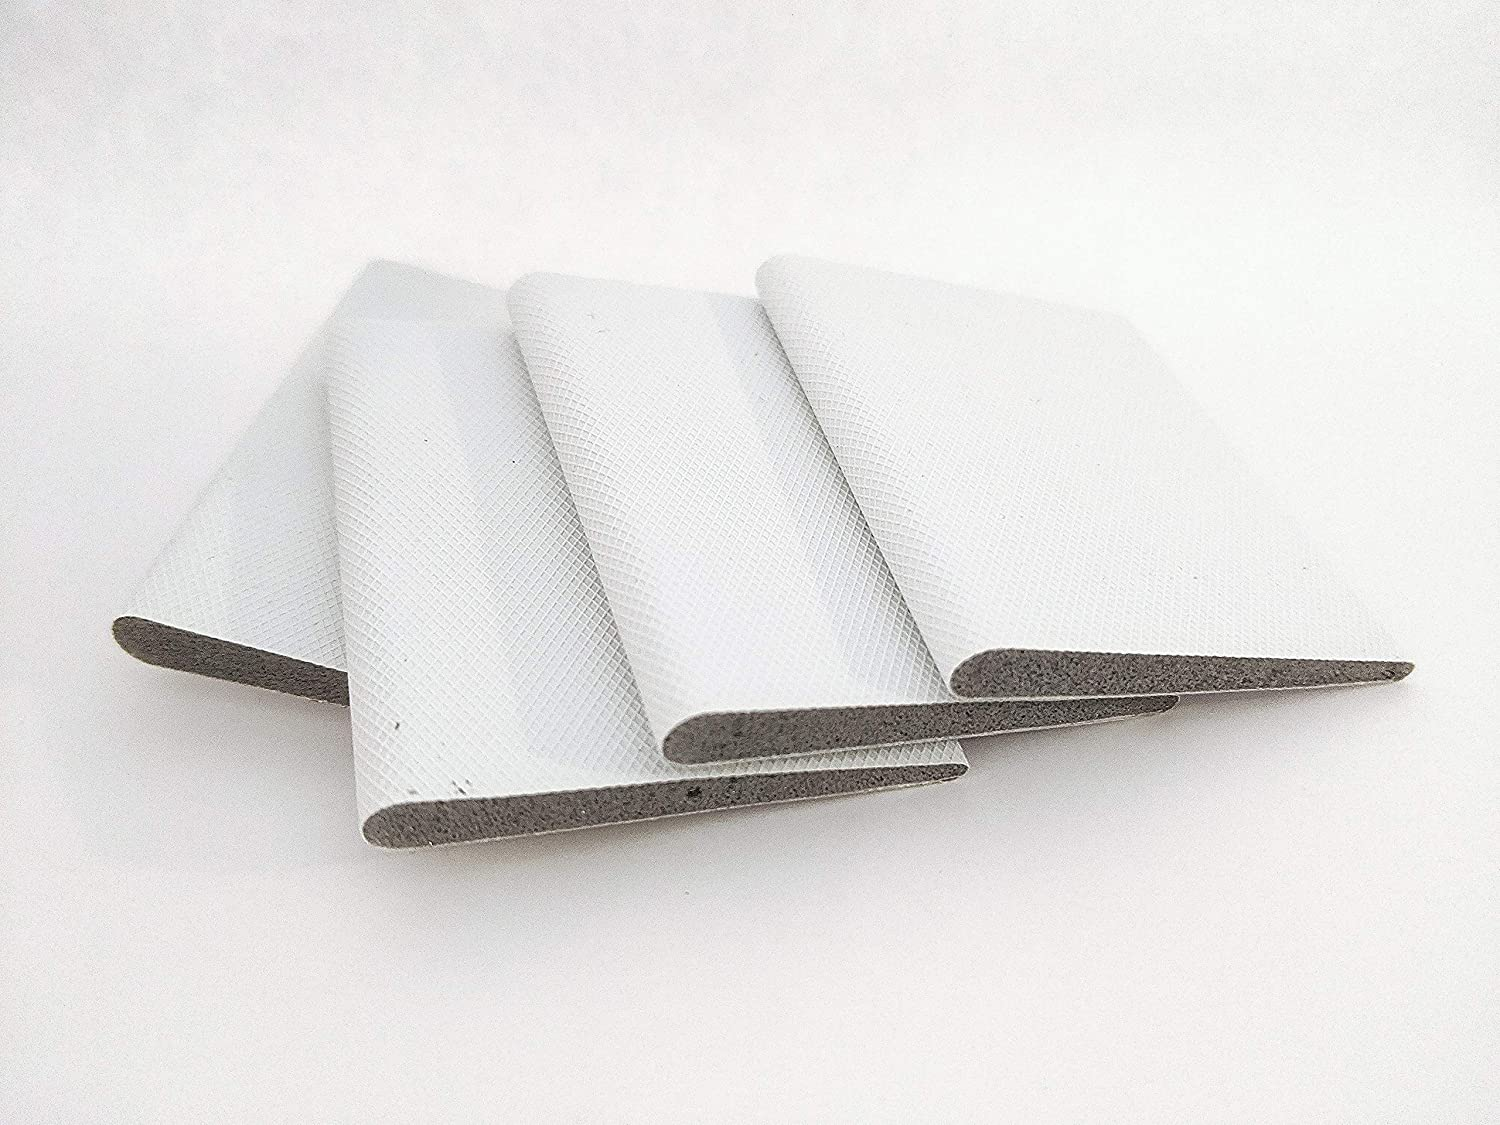 Door Corner Seals Seal Pads to of Special sale item The Latest item Bottom Exterio Your